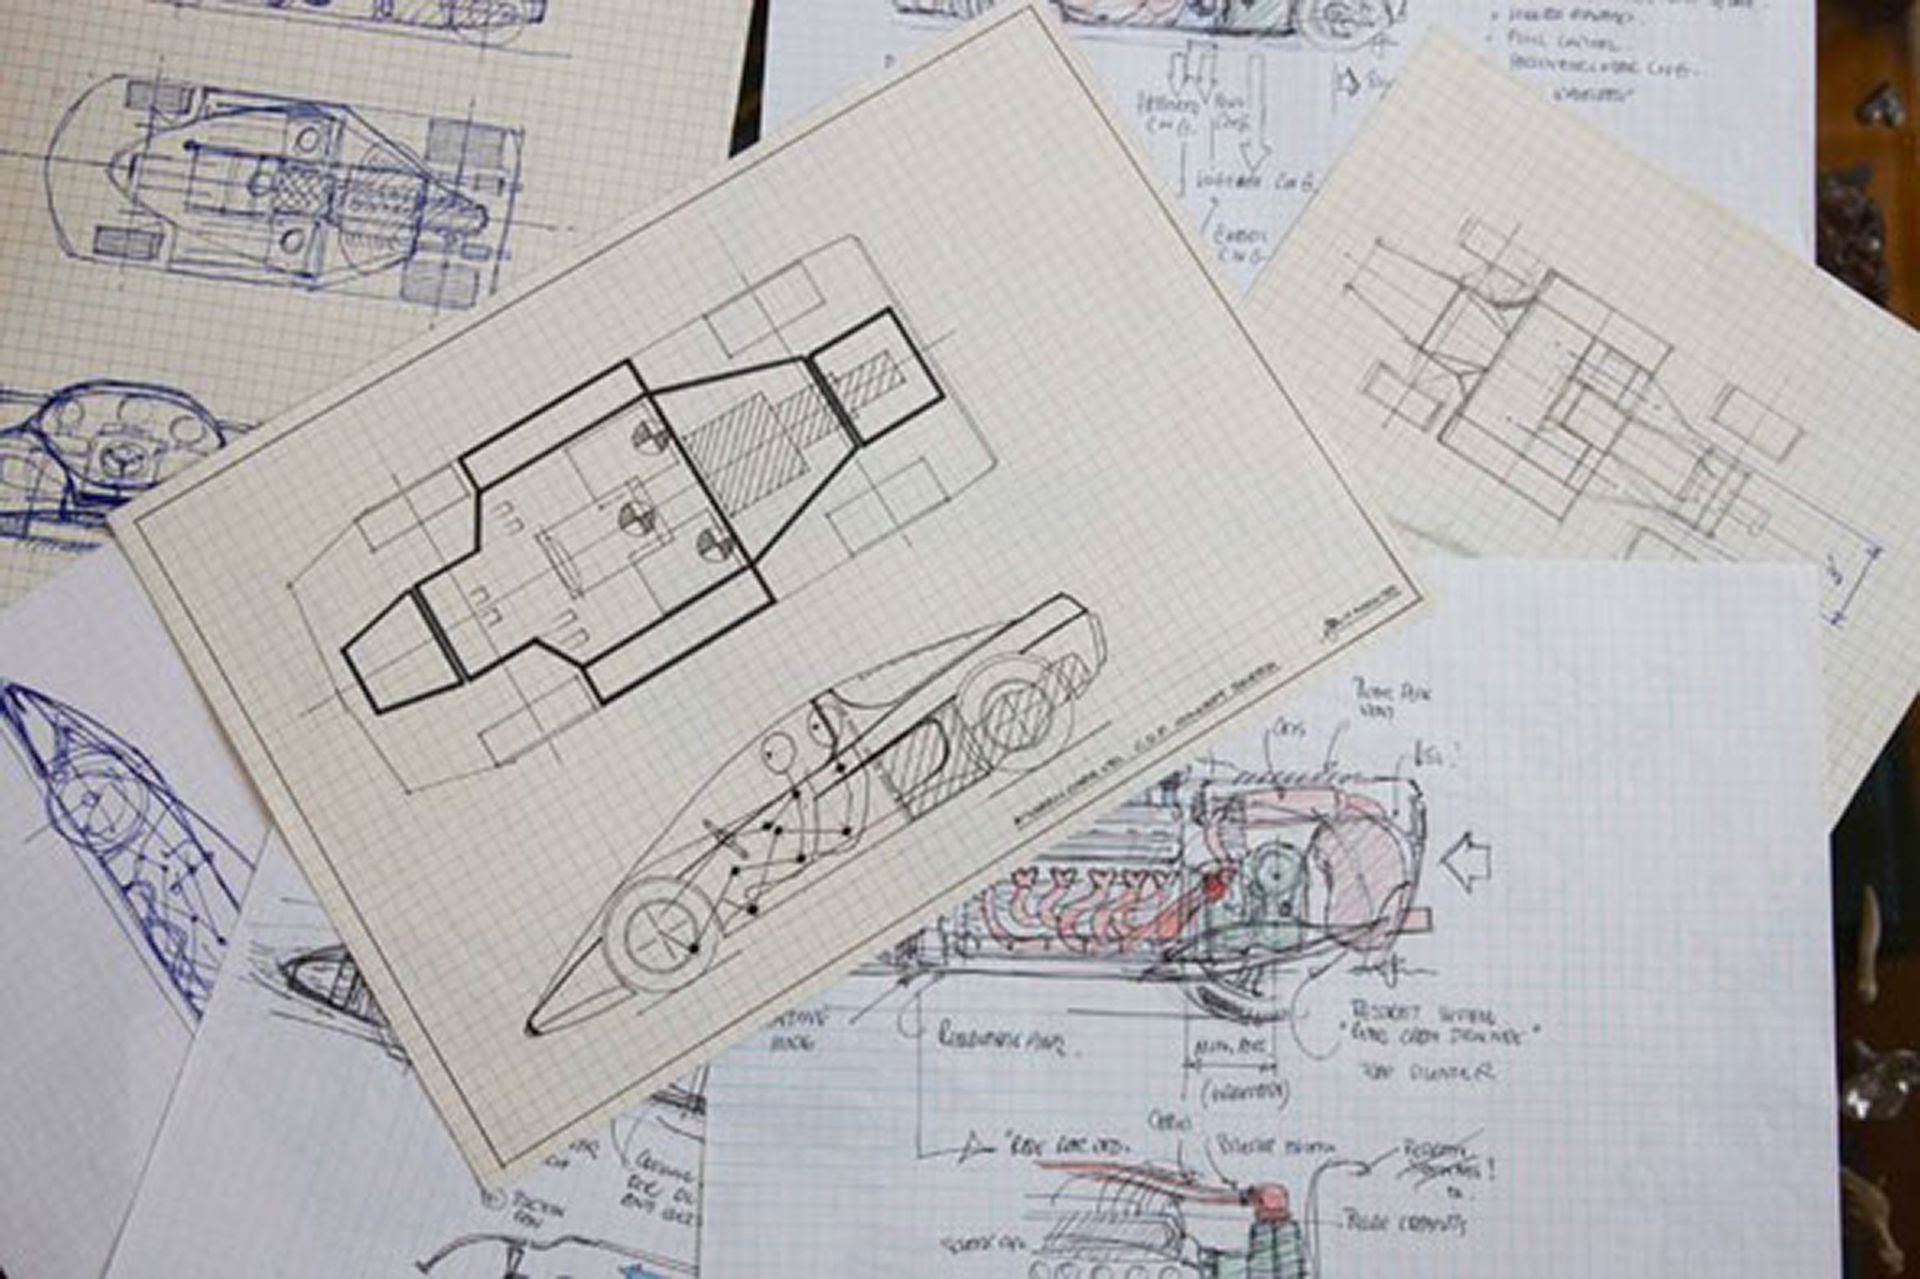 mclaren f1 - blueprint | mclaren | mclaren f1, cars, car magazine